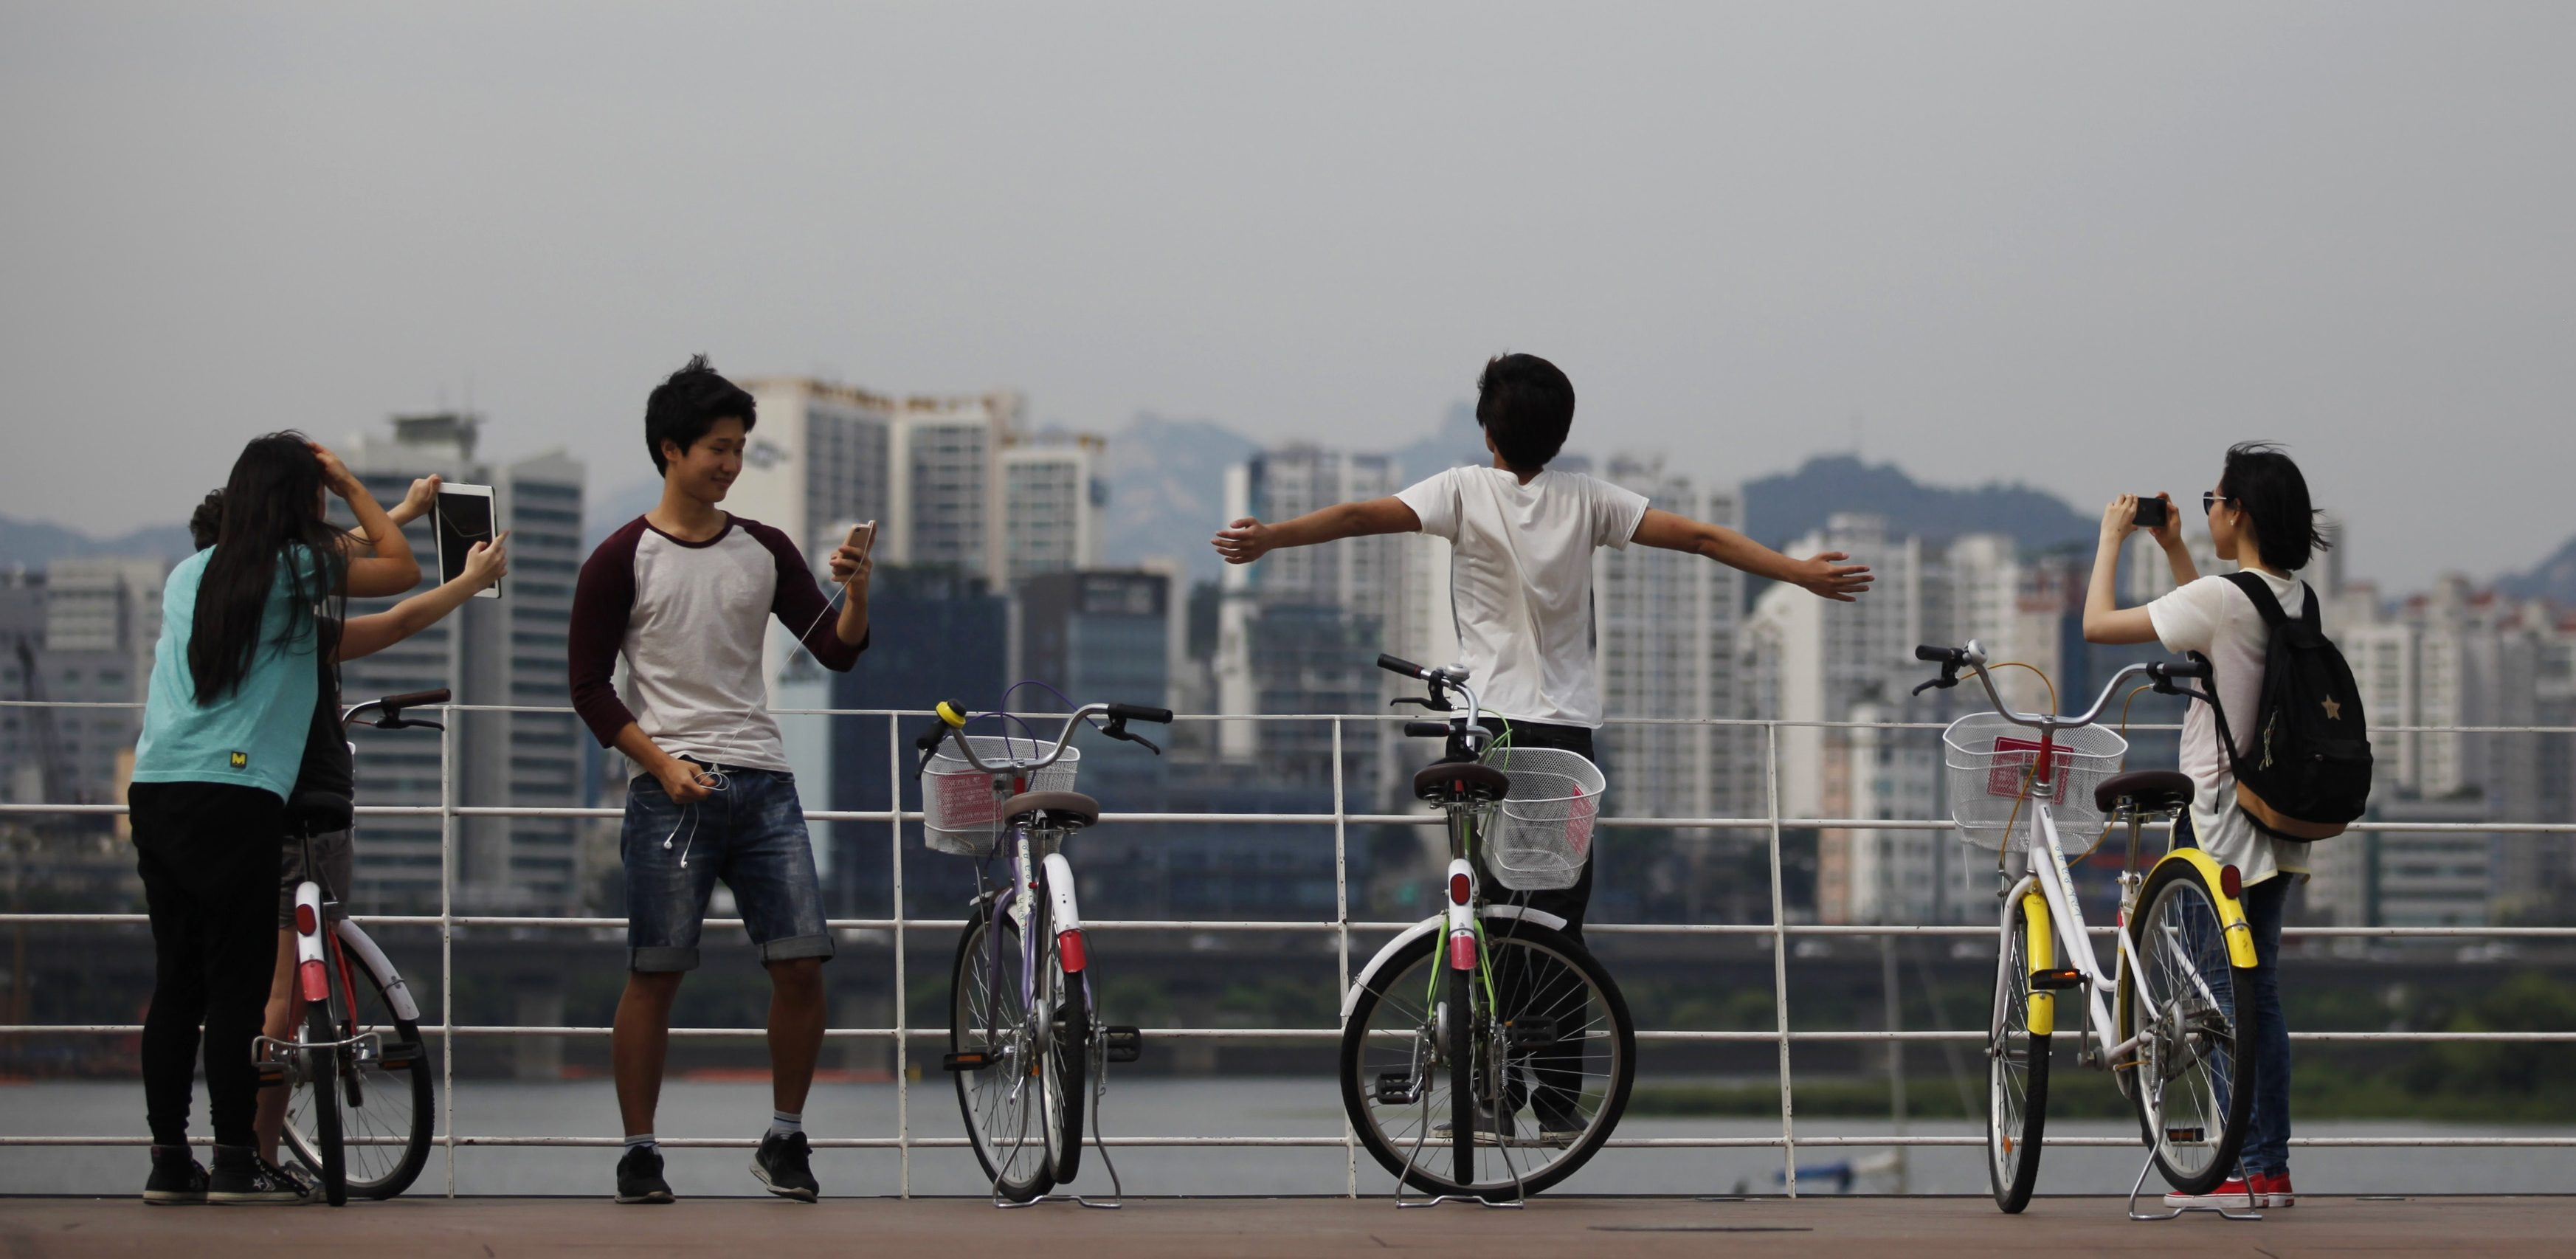 Youths take photographs with their smart devices at the Han River park in Seoul June 16, 2014.